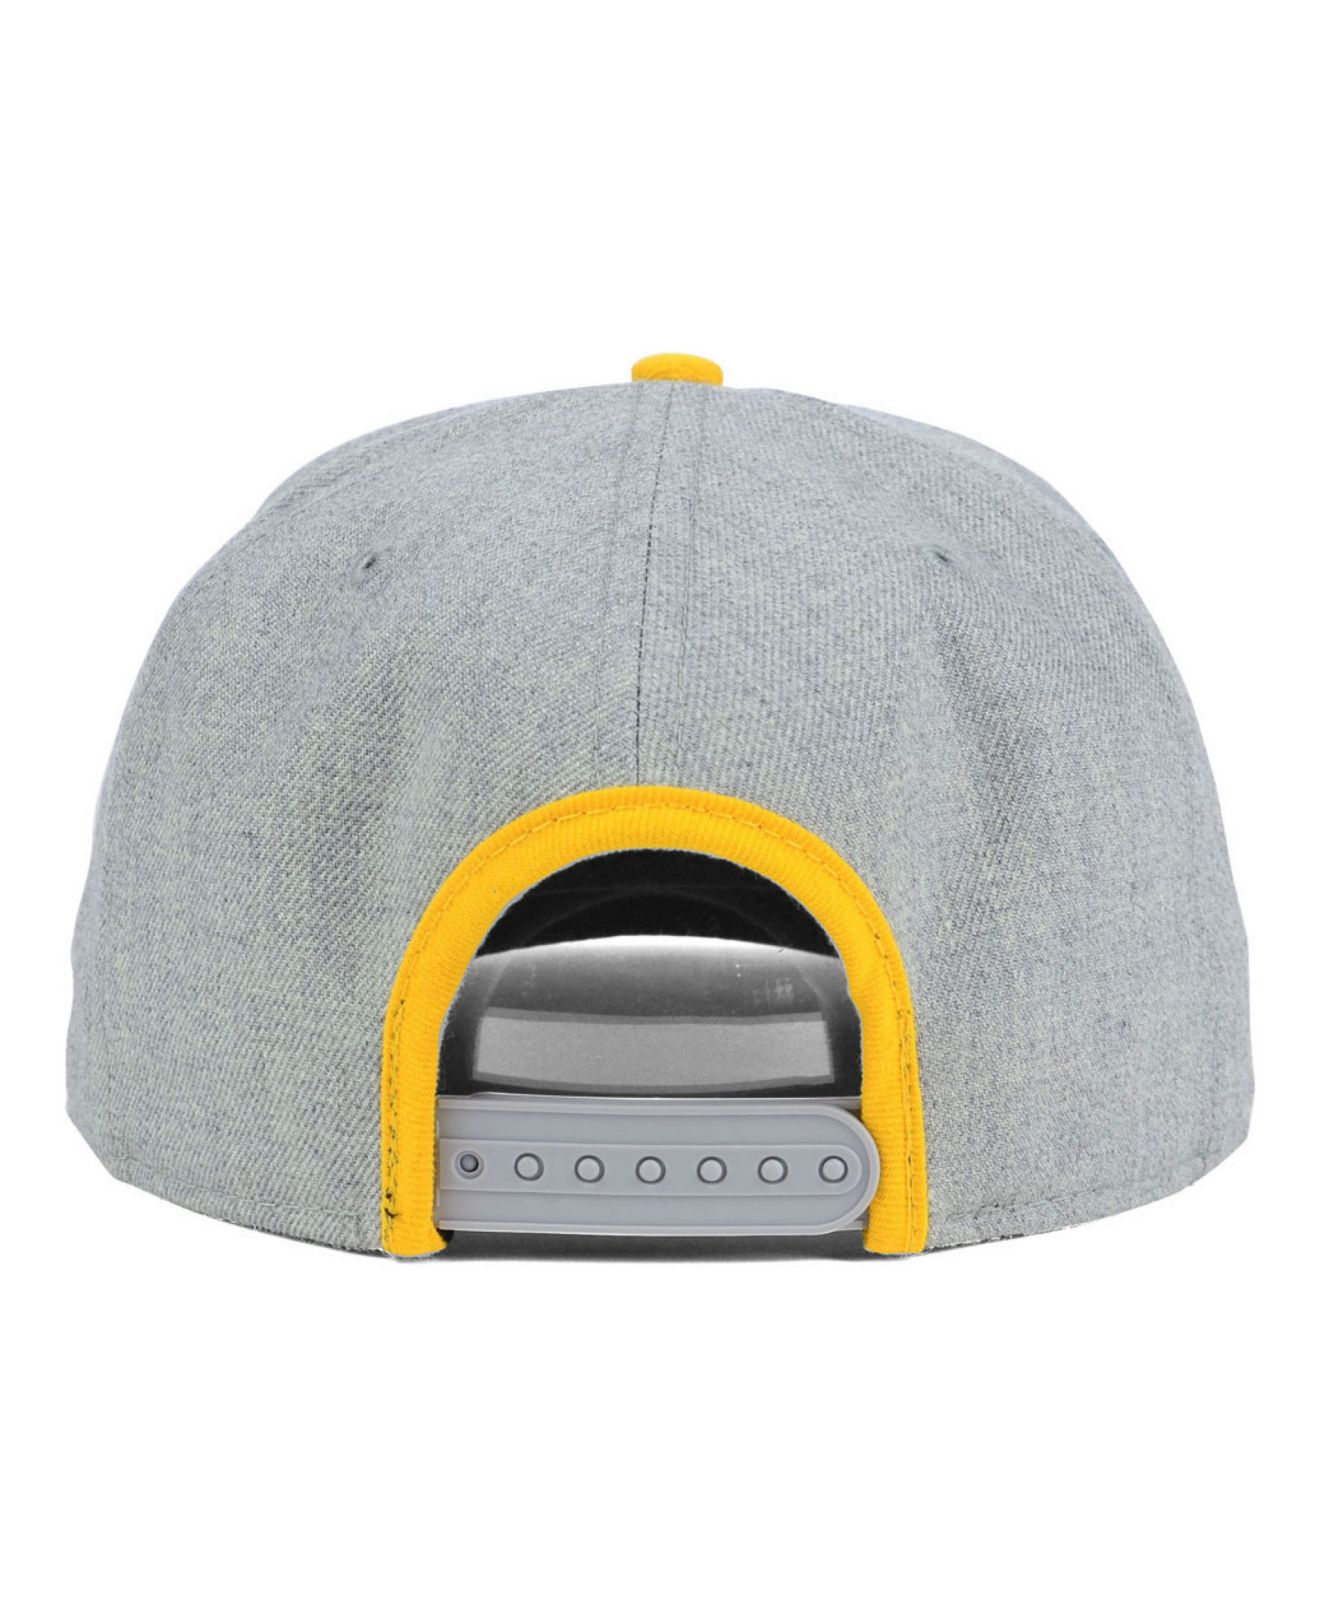 d961816a941 Lyst - KTZ Pittsburgh Steelers Property Of Snap 9fifty Snapback Cap ...